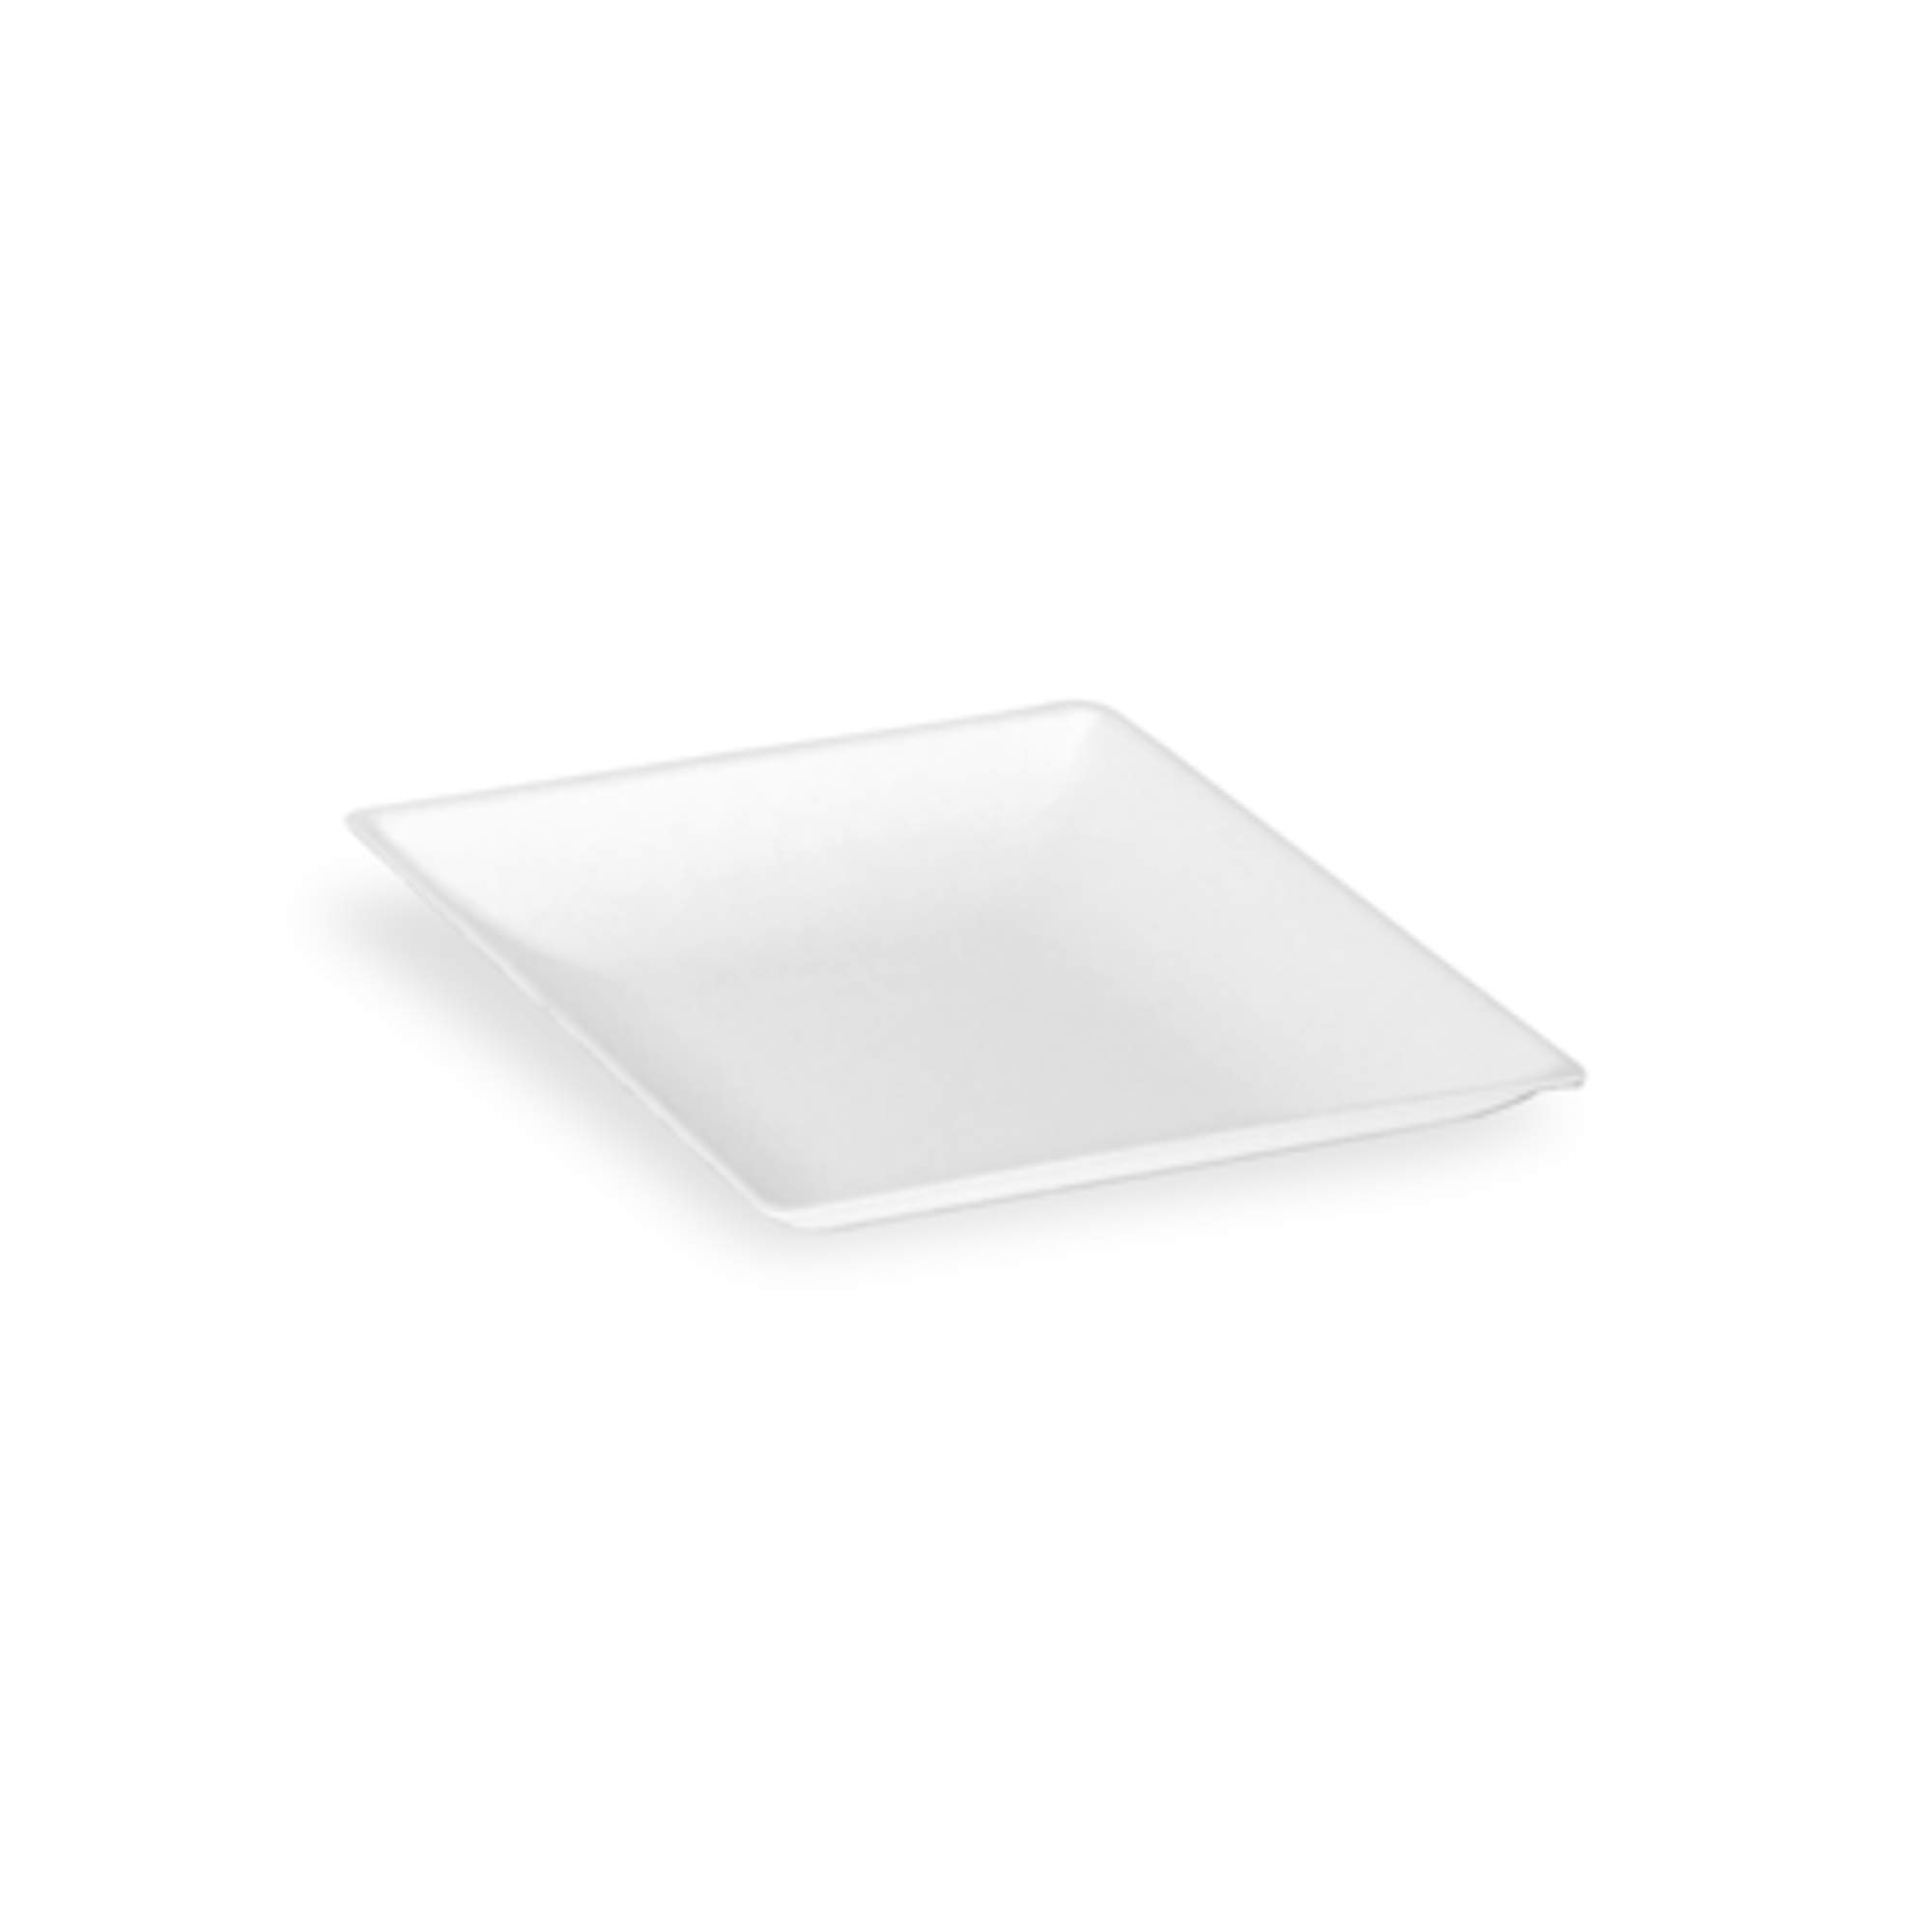 "Bio 'n' Chic White Mini Sugarcane Plate (Case of 100), PacknWood - White Paper Miniature Tray (3.5"" x 3.5"") 210BCHIC99"